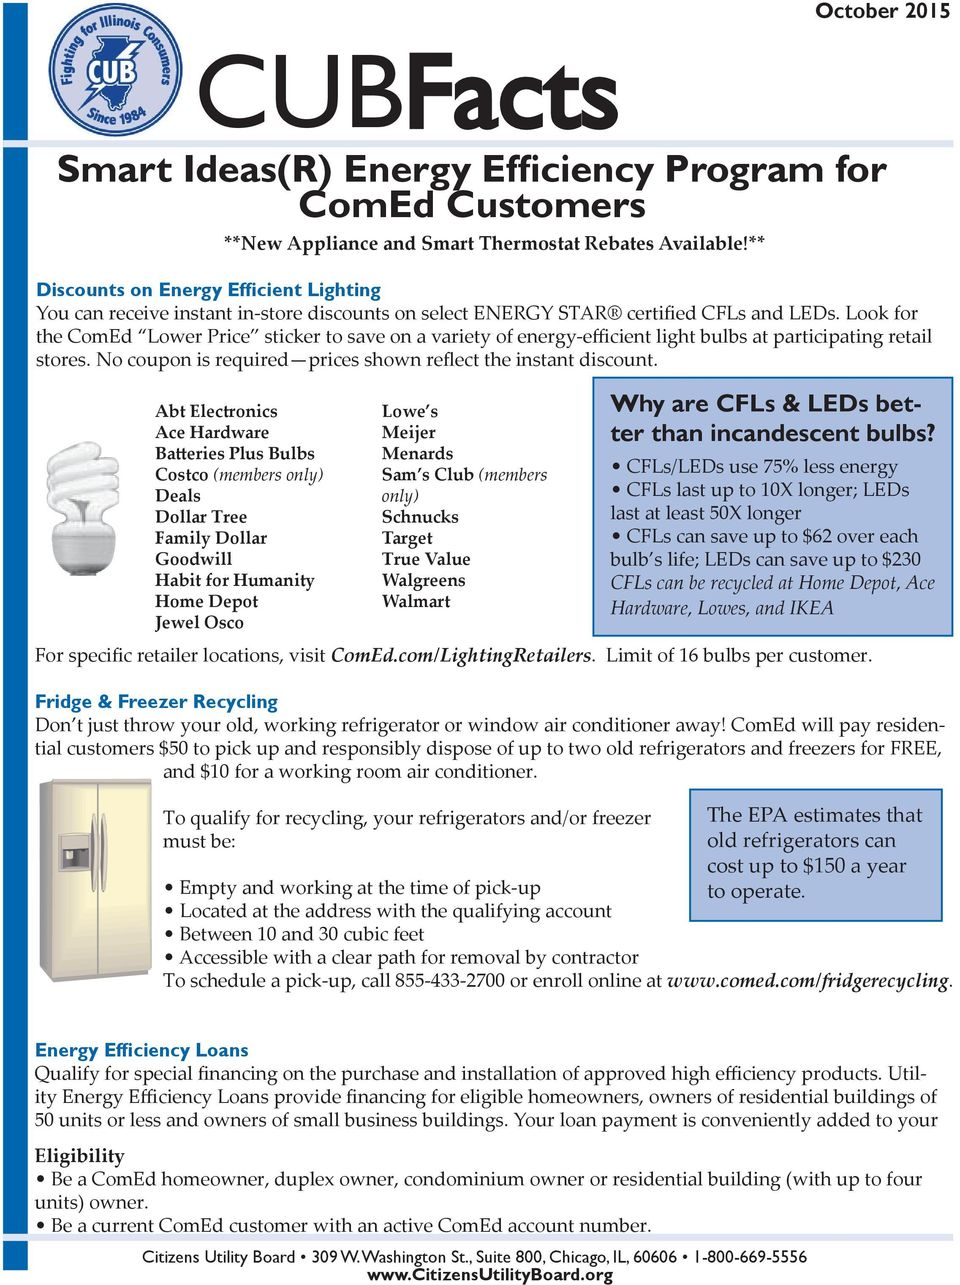 Look for the ComEd Lower Price sticker to save on a variety of energy-efficient light bulbs at participating retail stores. No coupon is required prices shown reflect the instant discount.